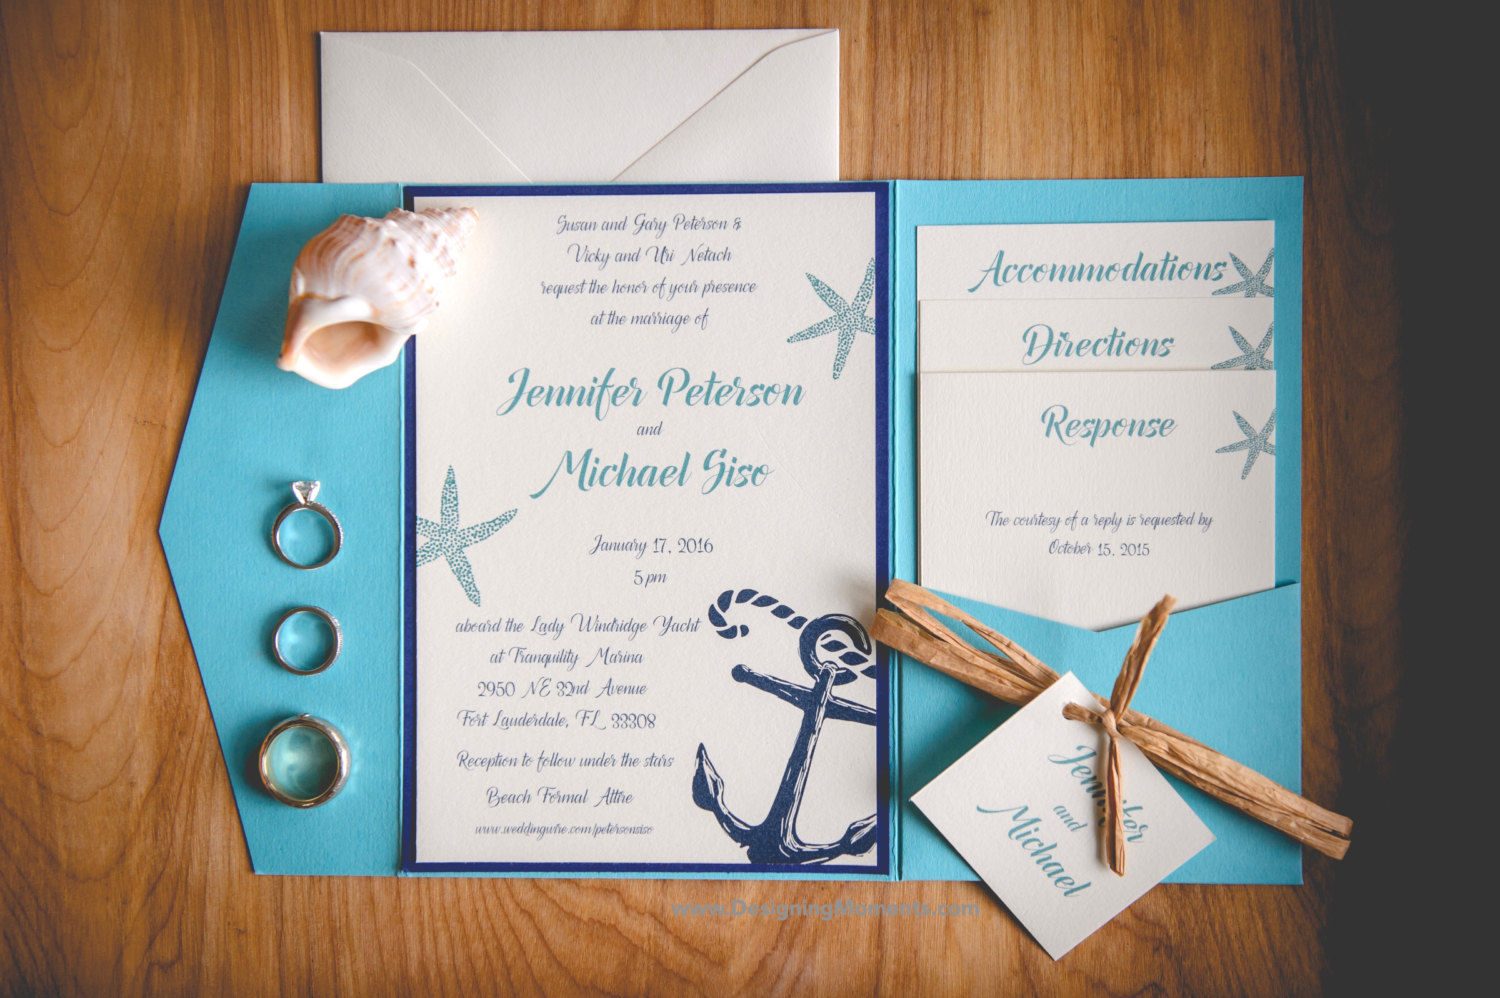 spread the word with stylish and original beach wedding, Wedding invitations